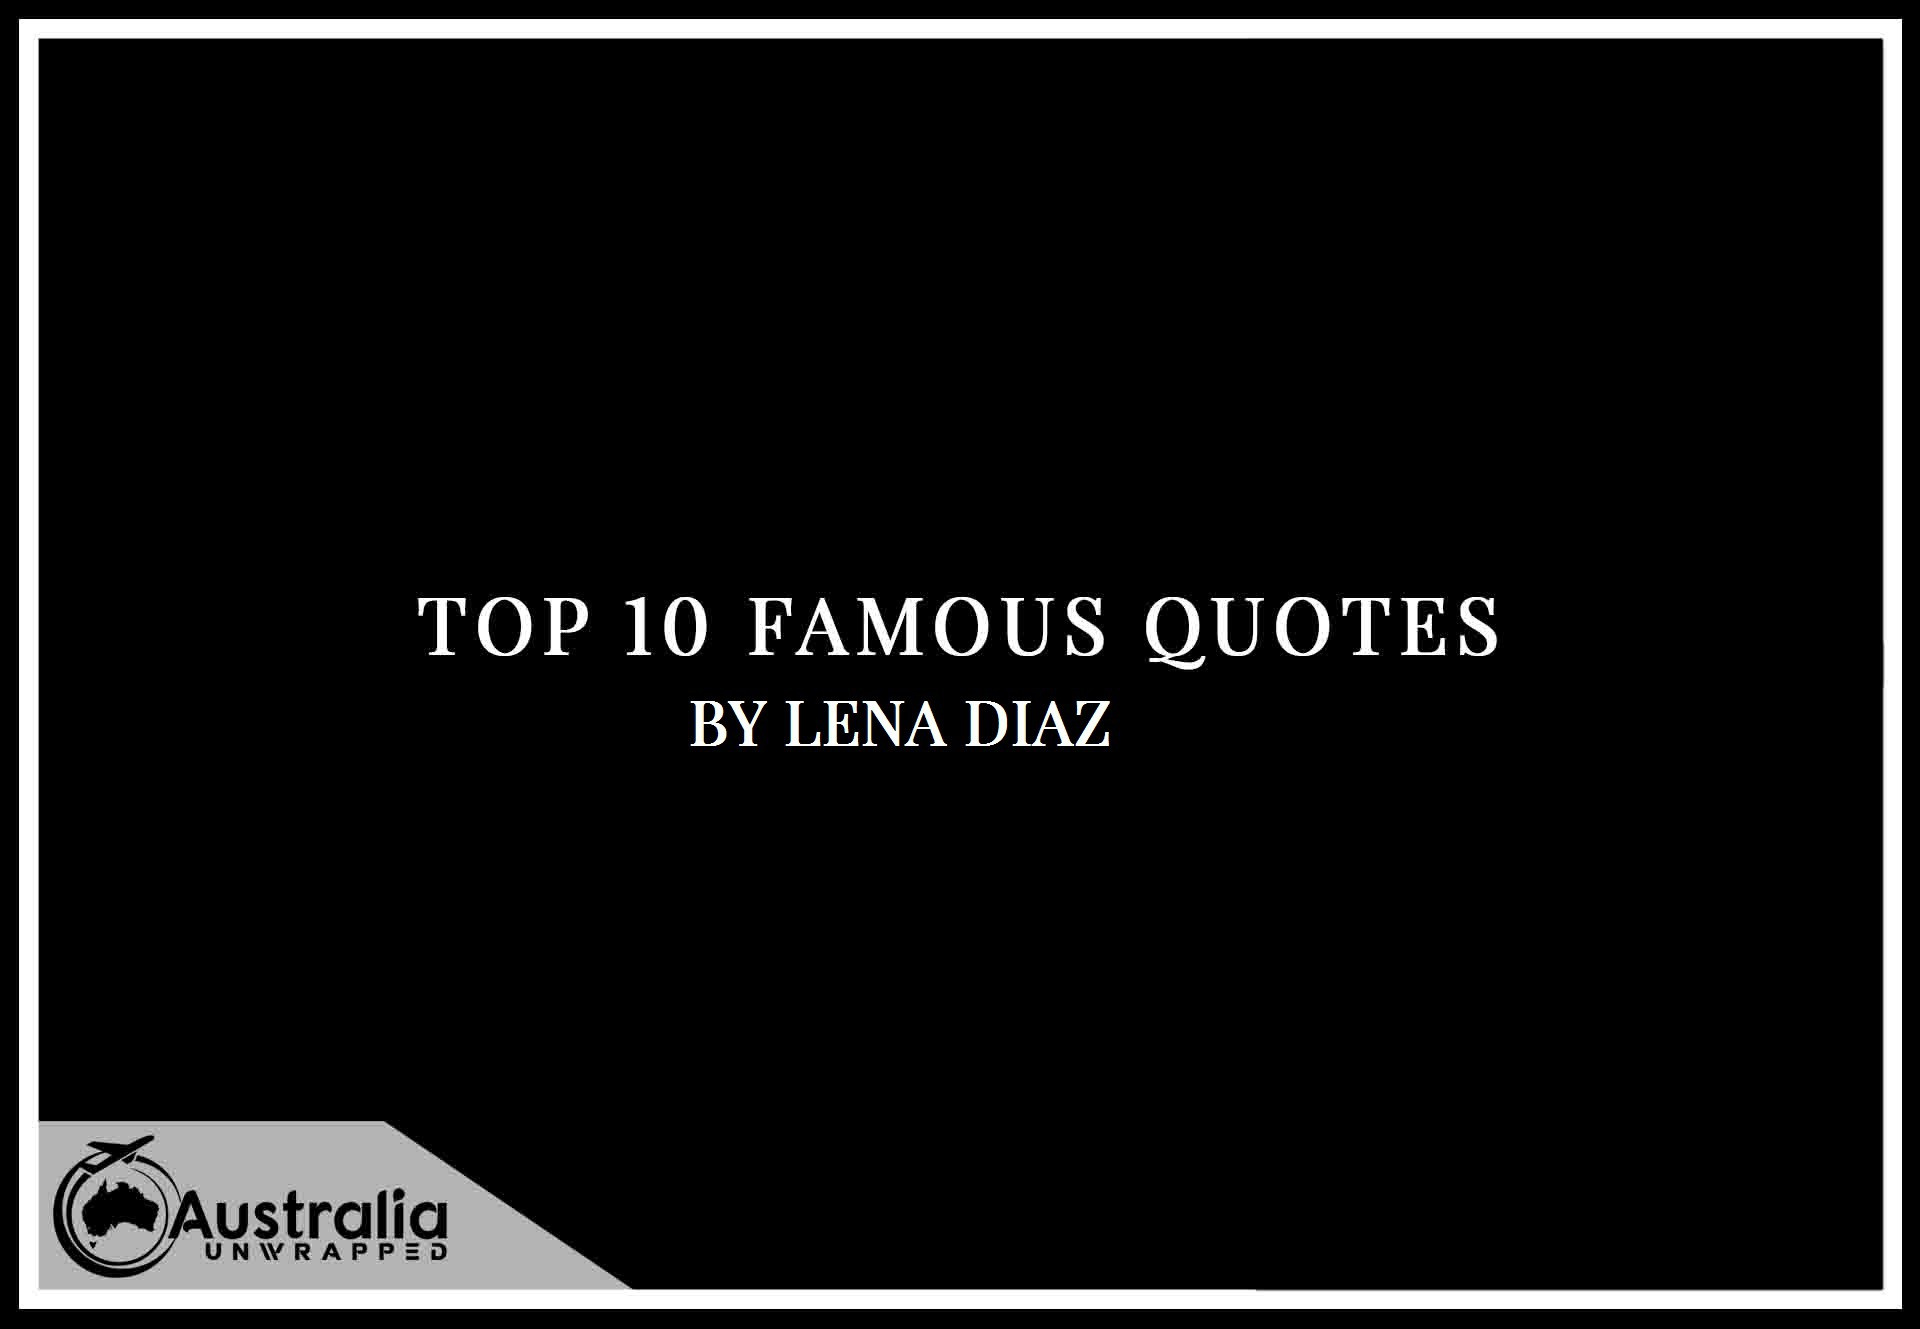 Lena Diaz's Top 10 Popular and Famous Quotes